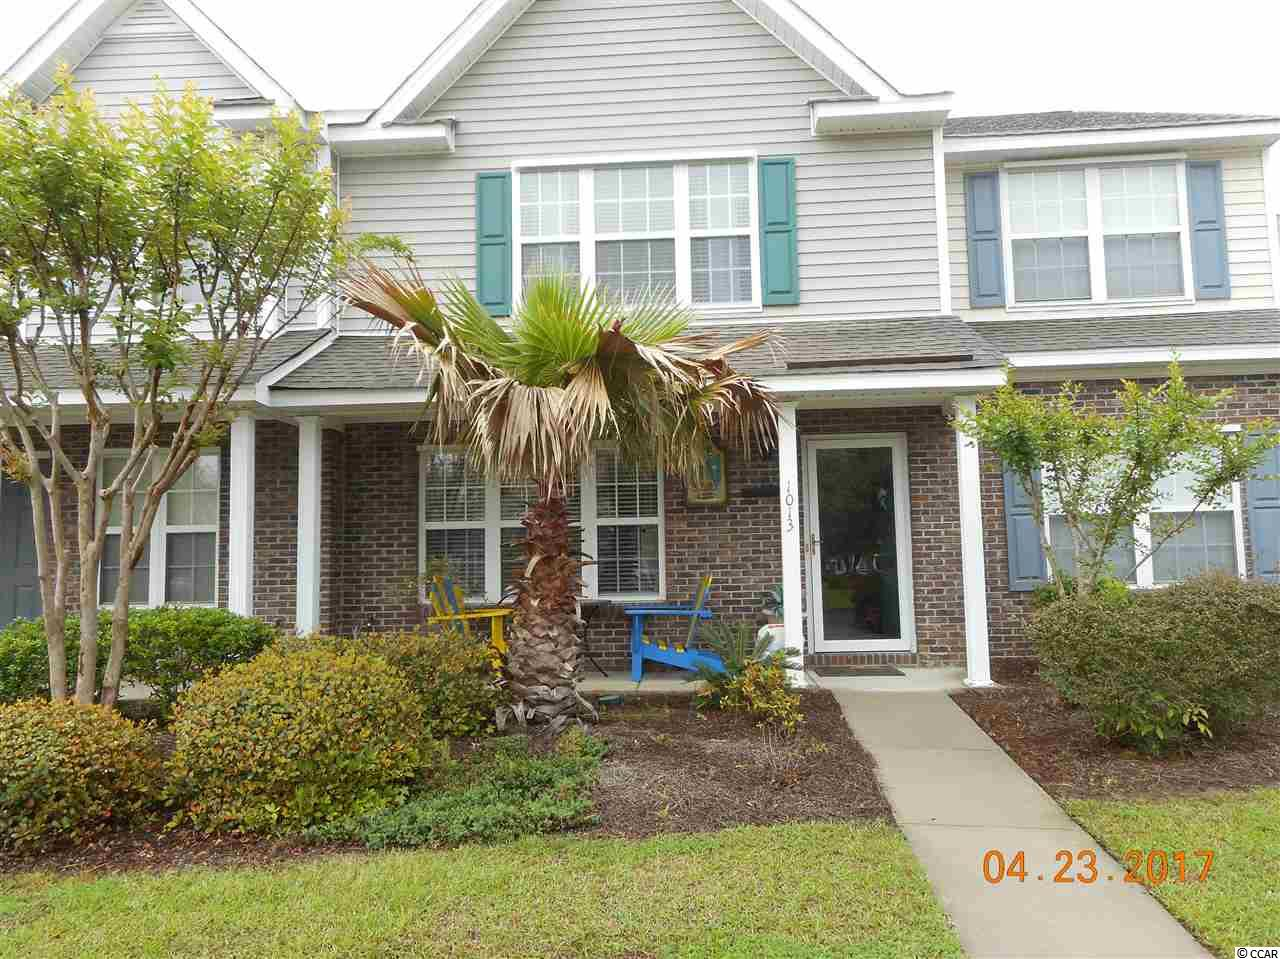 Townhouse MLS:1709494 PARKVIEW SUBDIVISION - 17TH AVE.  1013 Pinwheel Loop Myrtle Beach SC